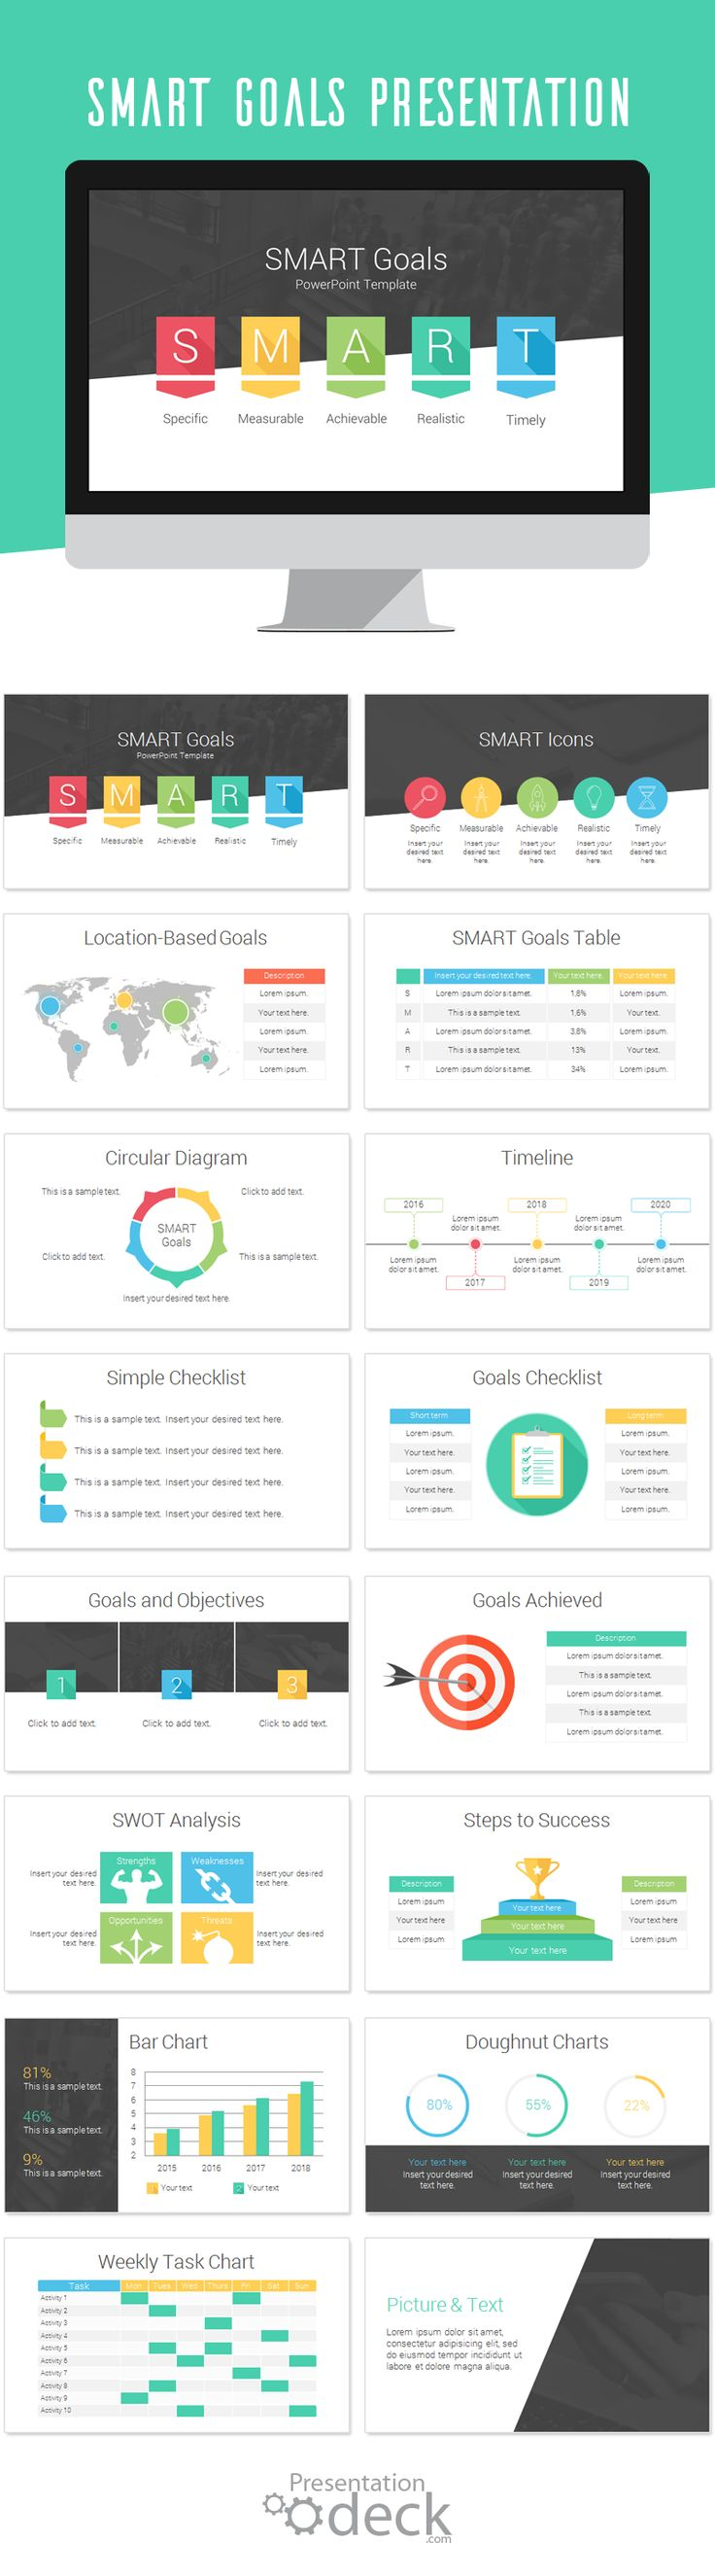 SMART Goals PowerPoint template with 16 pre-designed slides. Define your business target and objectives with style using this modern infographic for PowerPoint. #powerpoint #presentations #business #goals